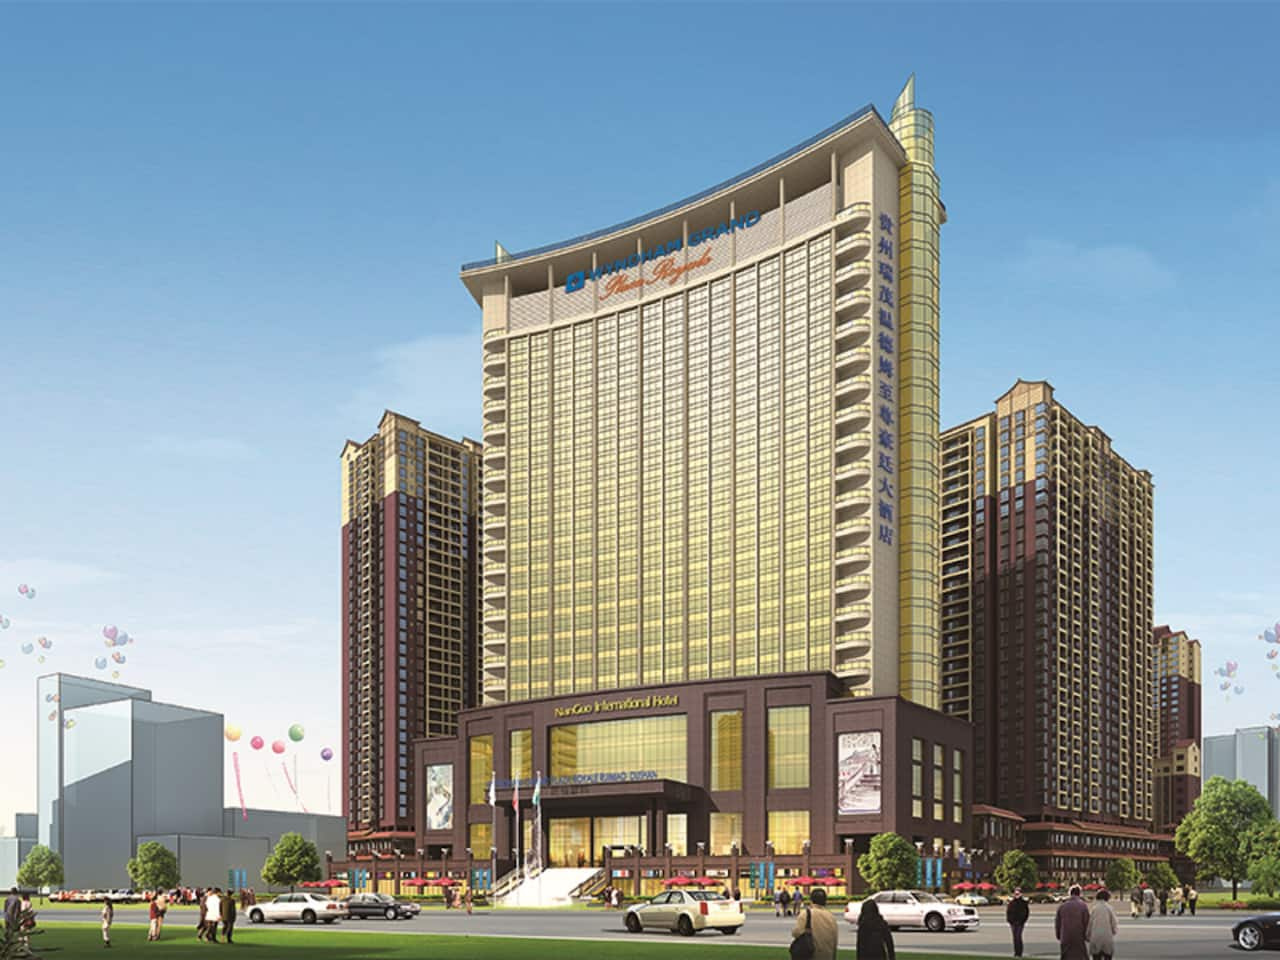 Wyndham Grand Plaza Royale Ruimao Guizhou in  Qiannan,  CHINA